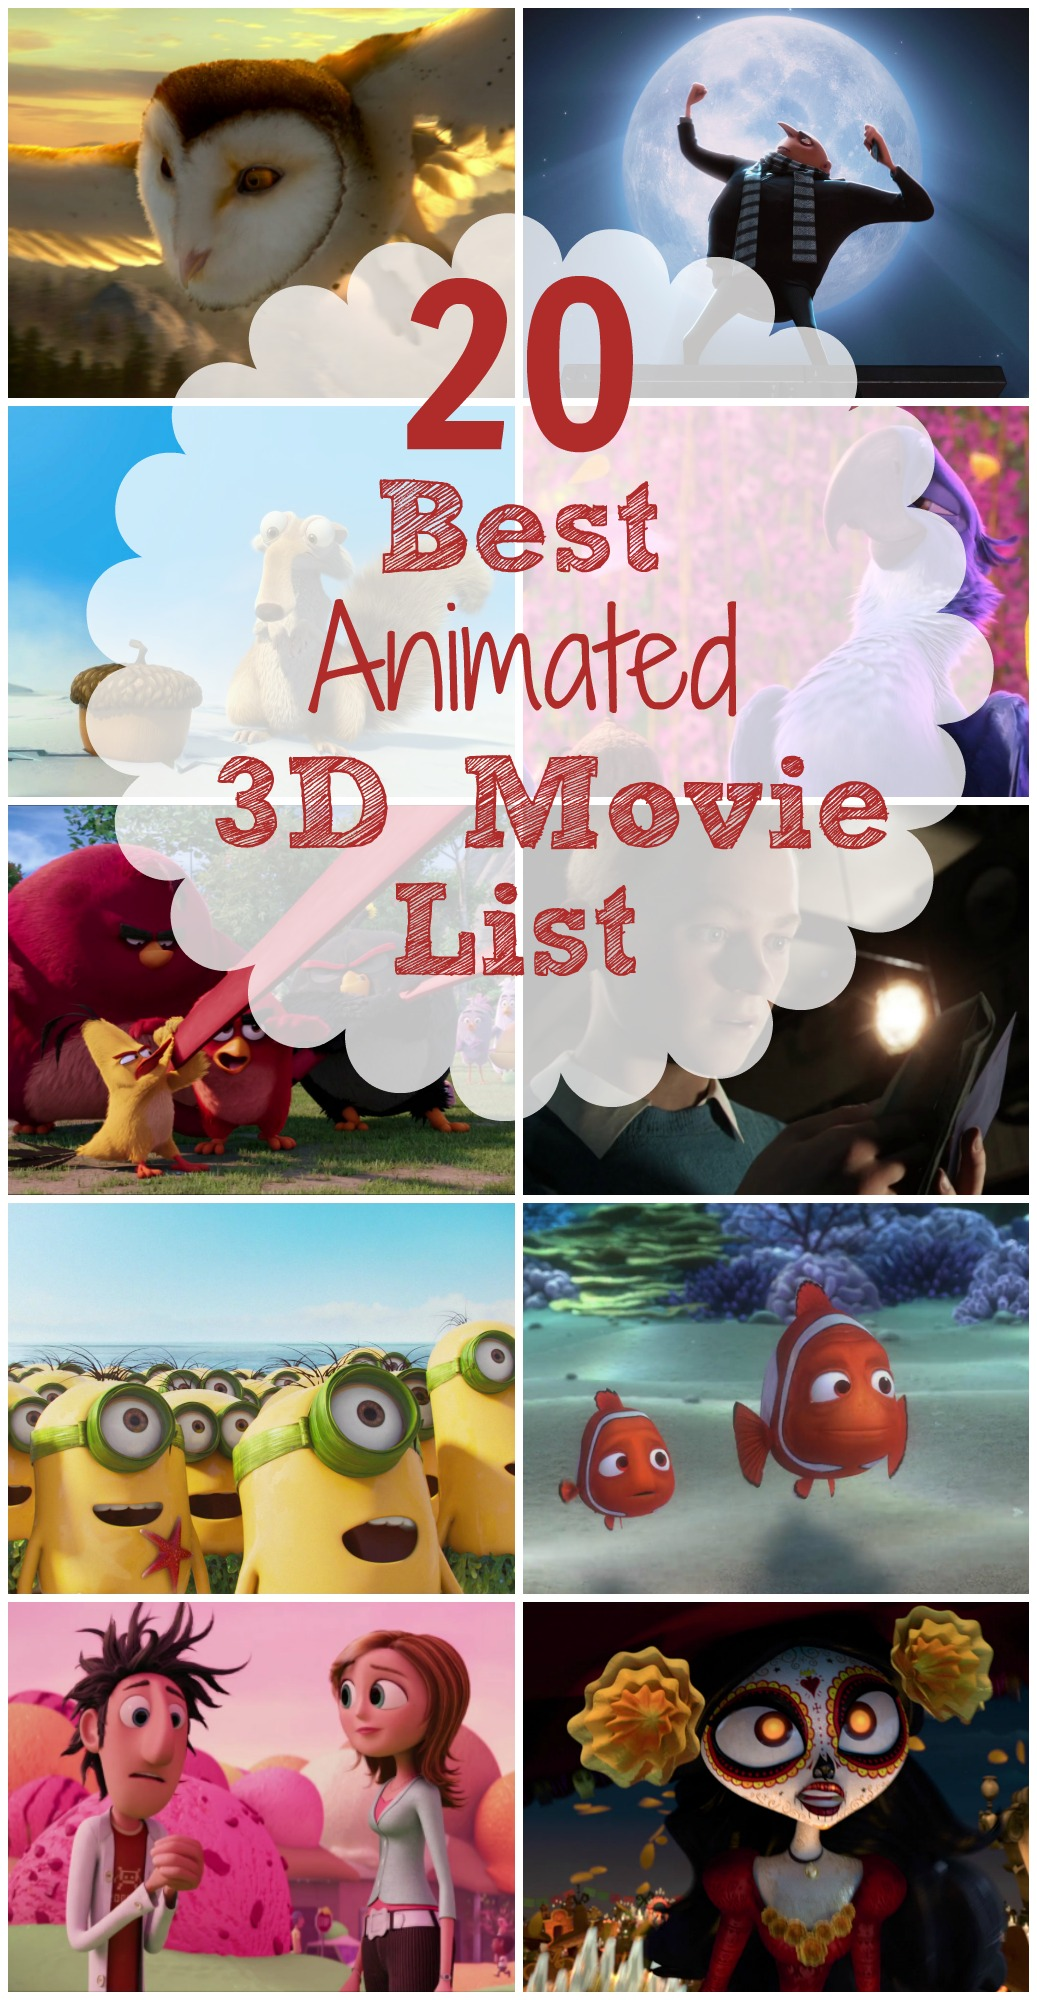 20-best-animated-3d-movie-list